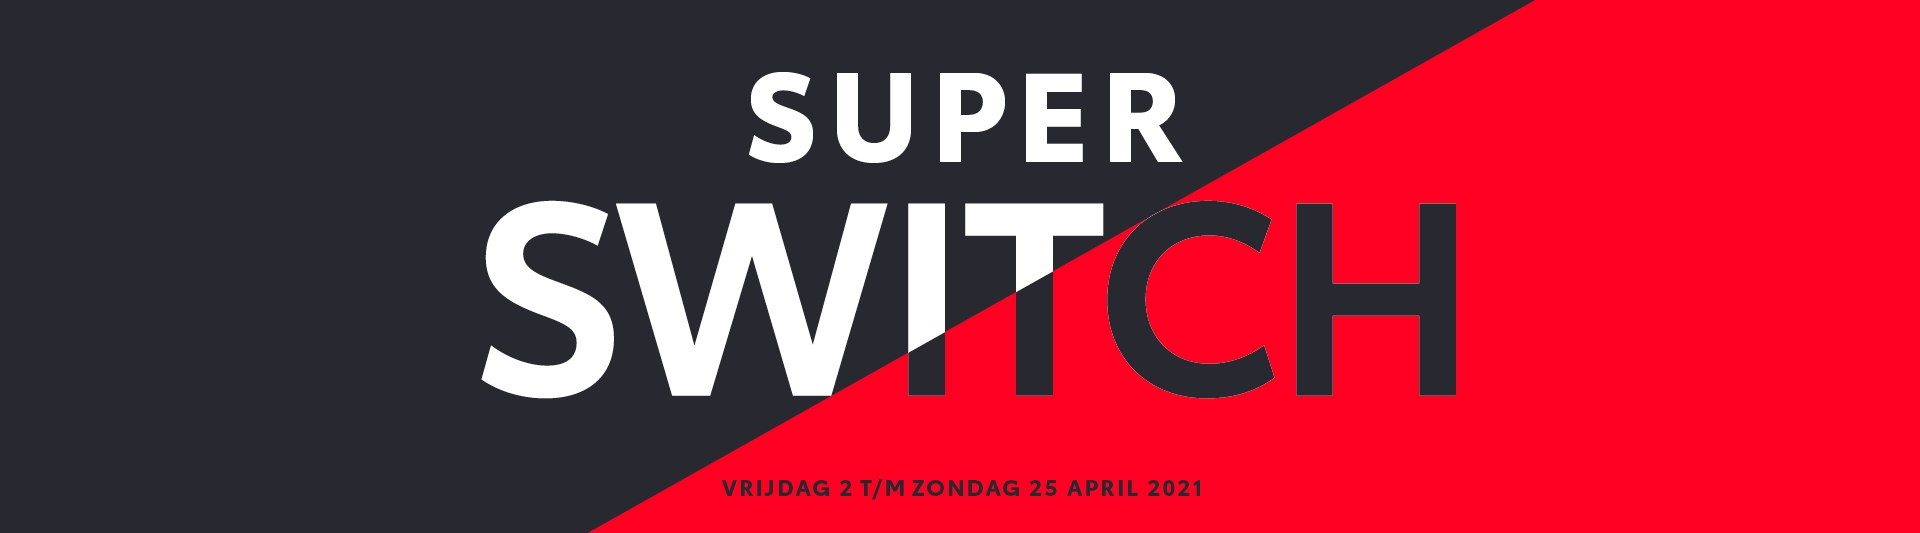 795_Super Switch_headerbeeld_1920x533.jpg